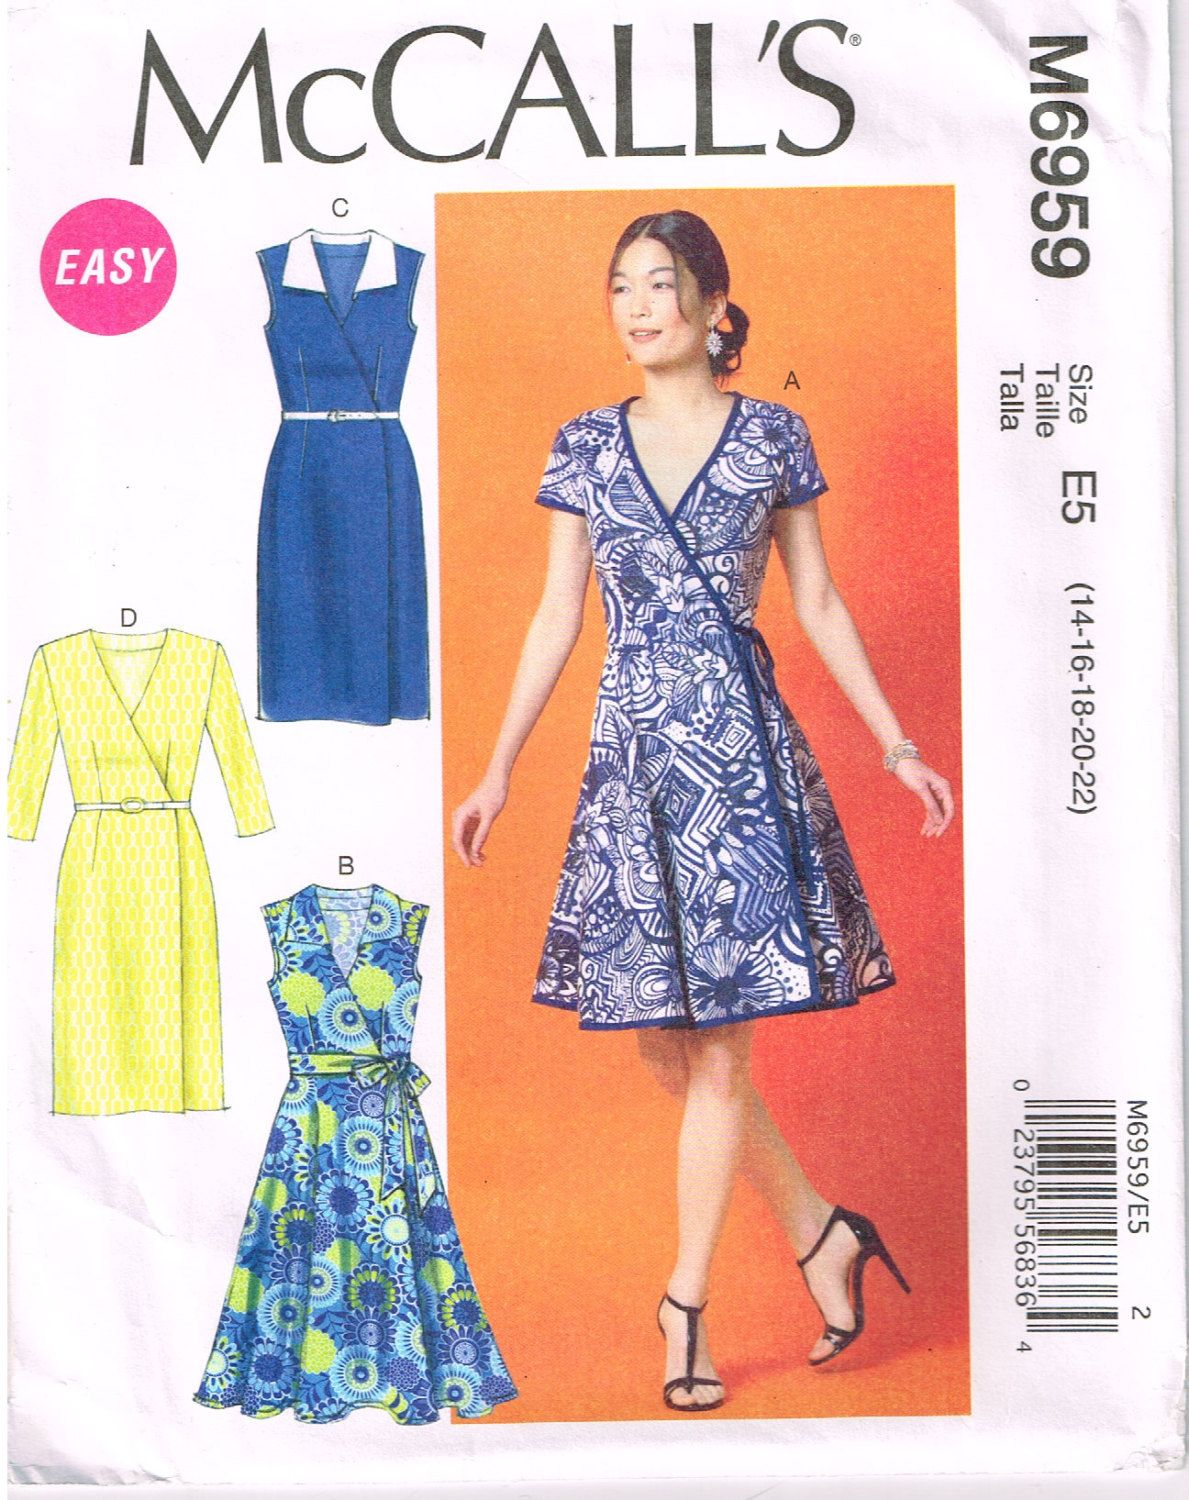 McCall\'s M6959, Sewing Pattern, Women\'s Dresses, Size 14, 16, 18, 20, 22